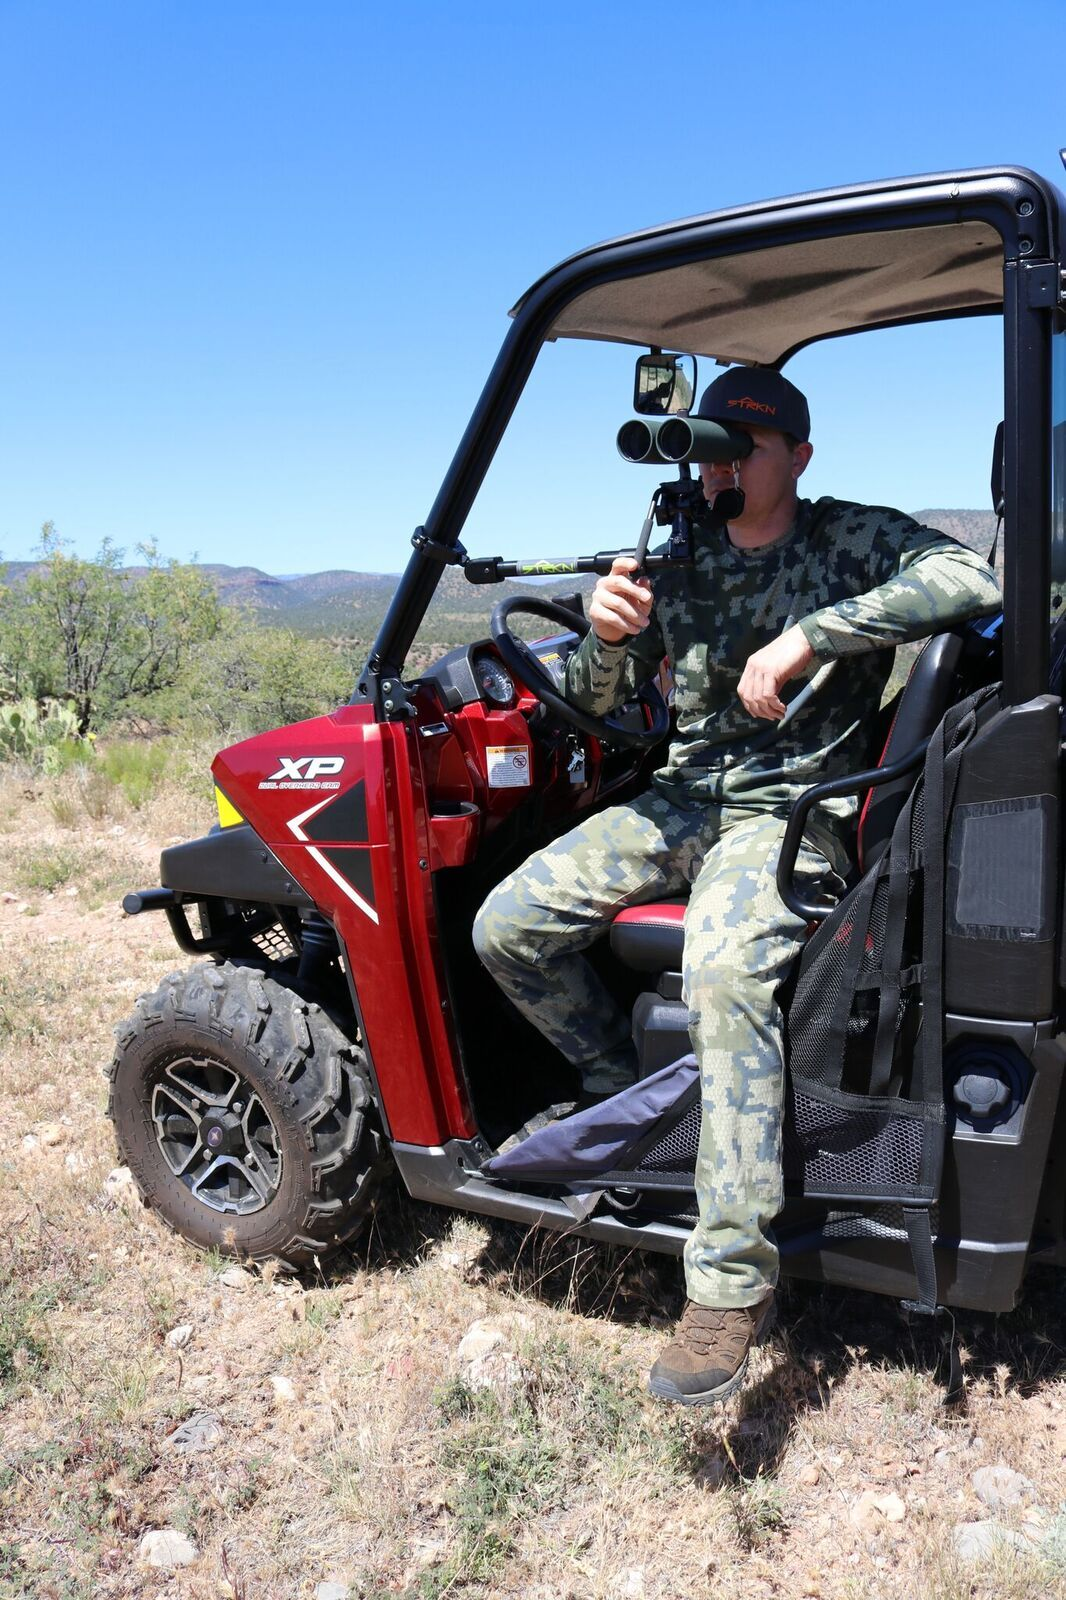 Cryptocage Com Check Out Our New Line Of Strkn Hunting Products The Spotting Arm 2 Is An Industry First This New Accessor Roll Cage Hunting Camping Storage